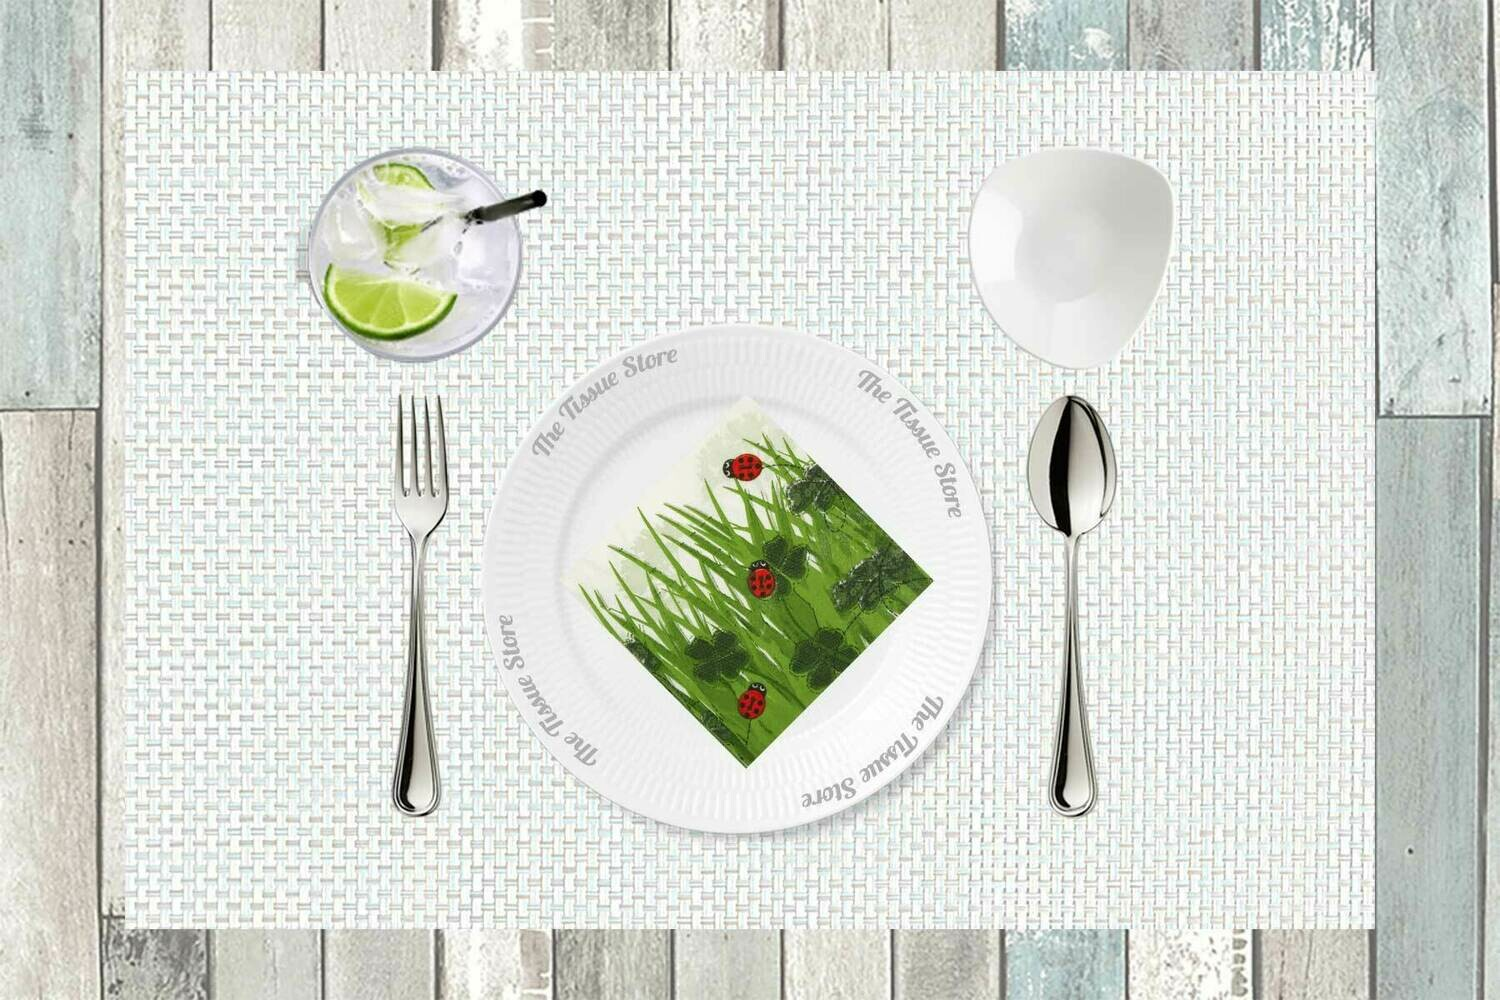 Breakfast / Cocktail Paper Napkin -Grass and Beetles Print - (Pack of 20)